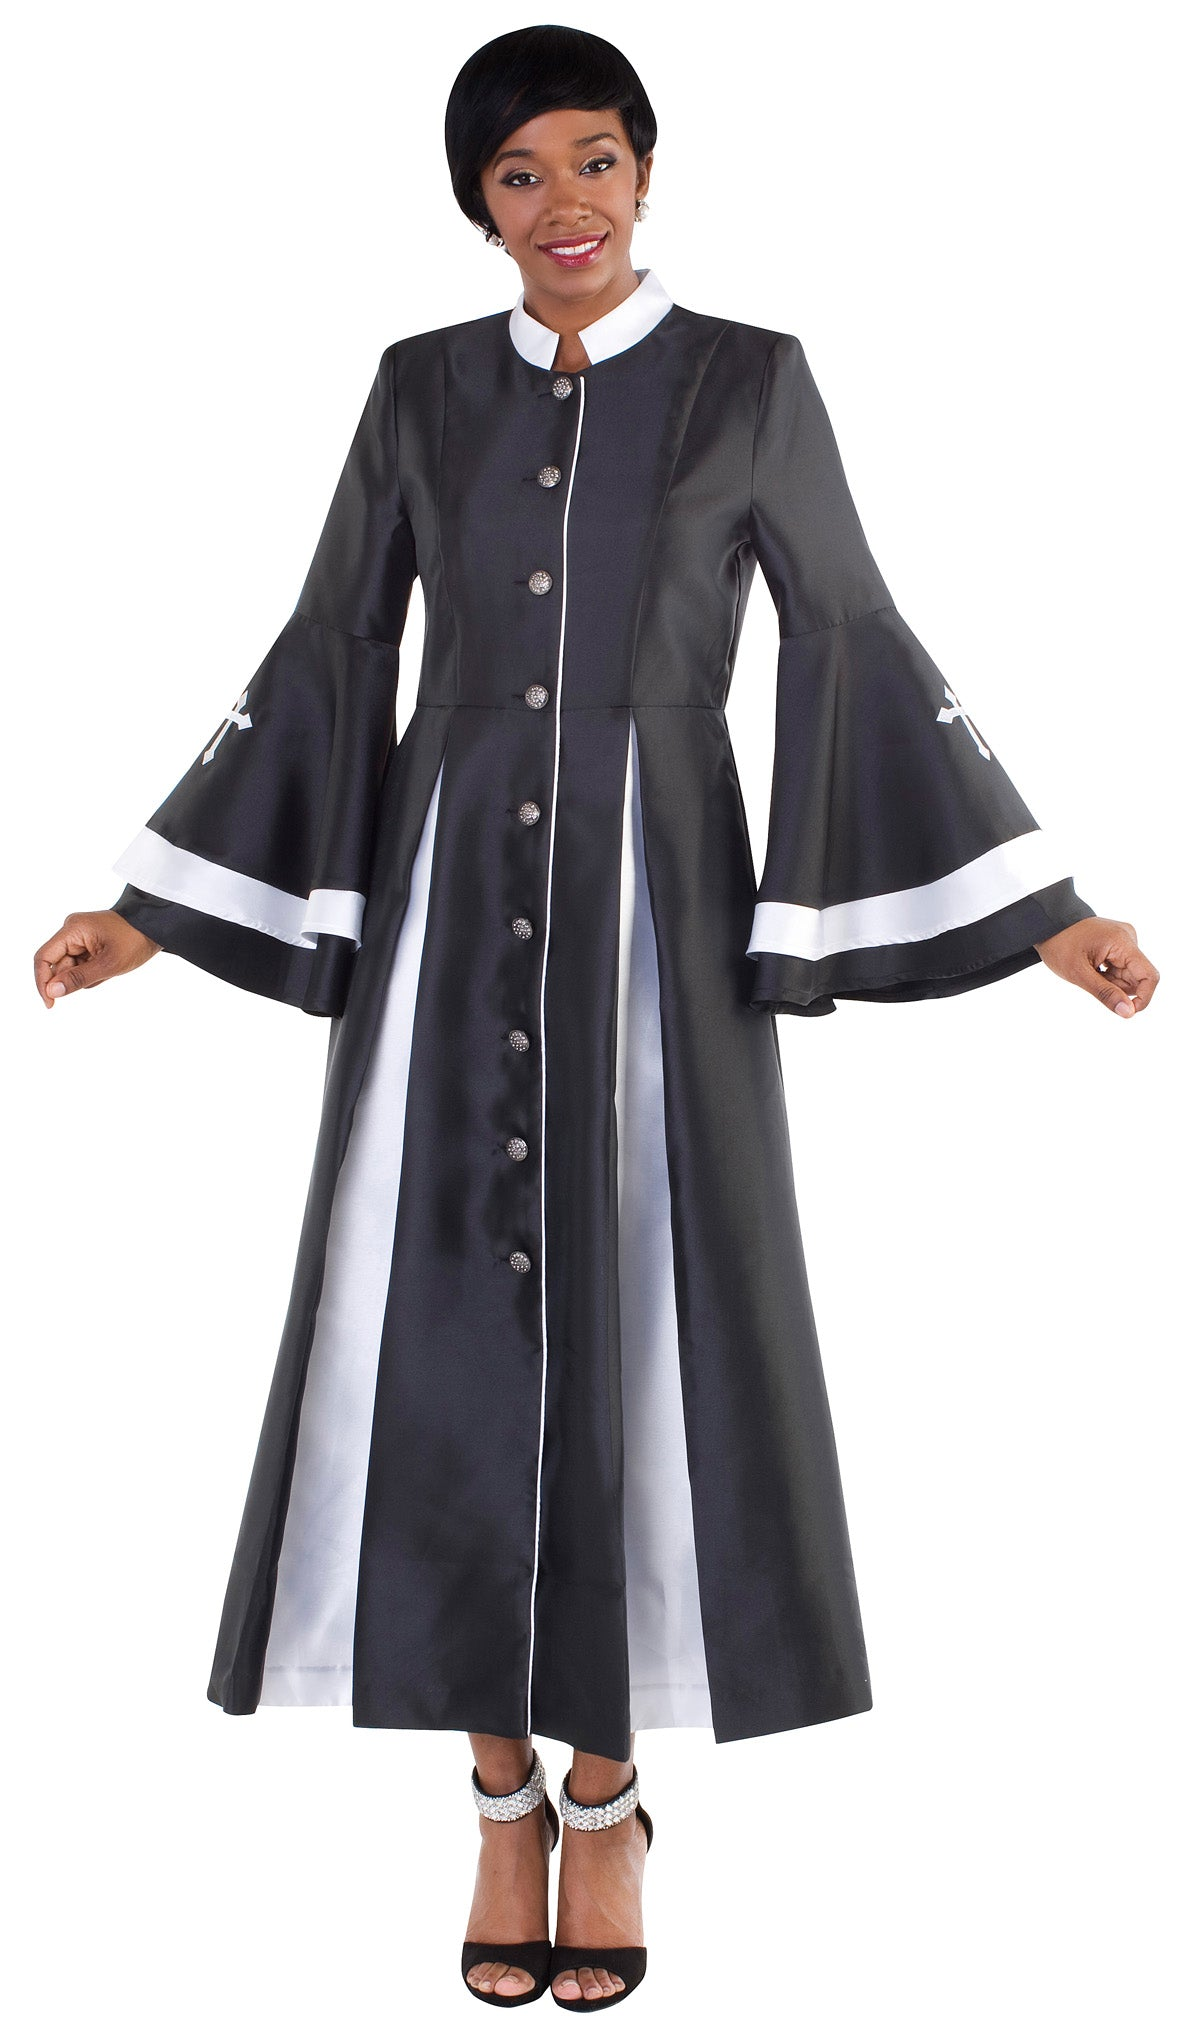 Tally Taylor Robe 4615-Black/White - Church Suits For Less